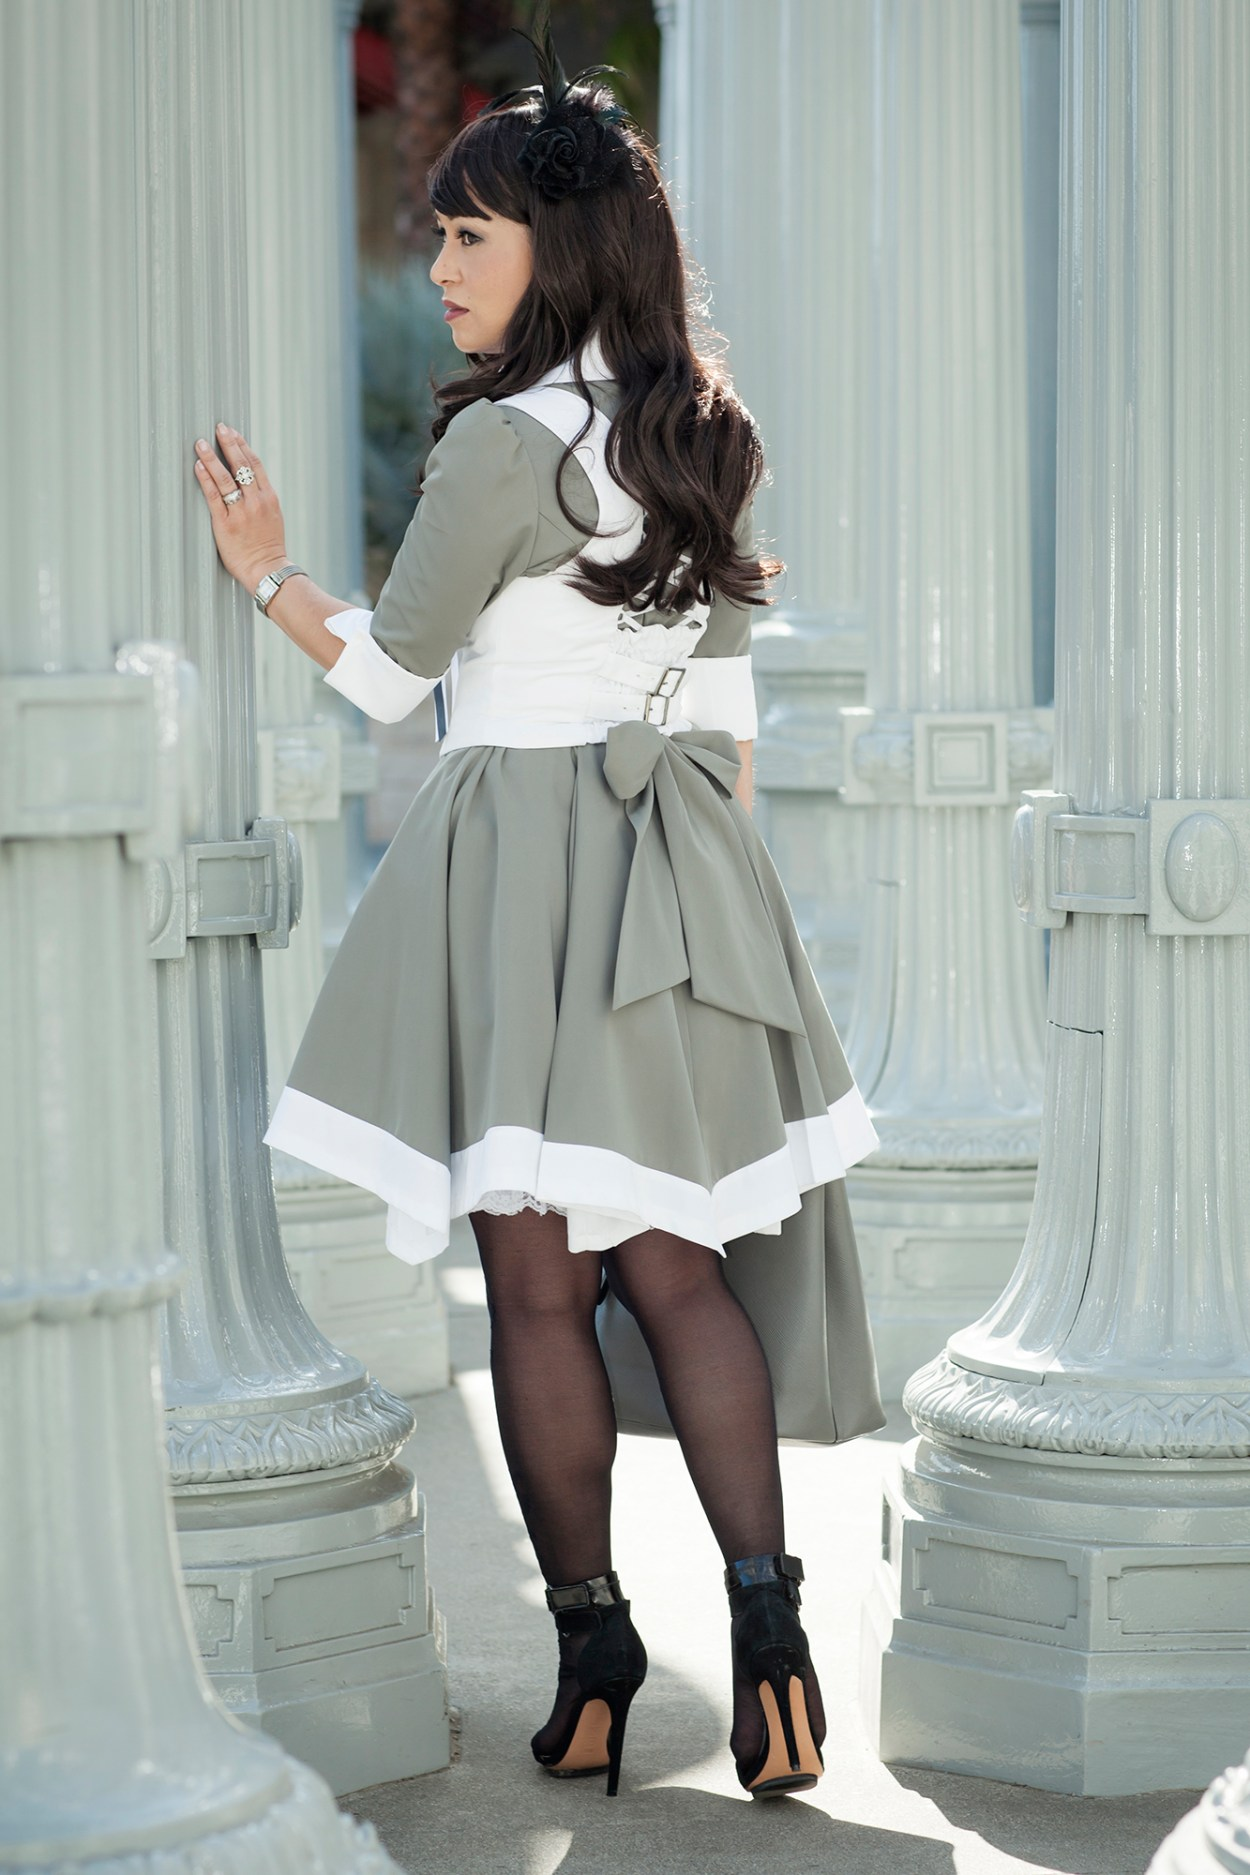 7-Atelier-BOZ-Carol-Neo-Dress-Female-Women-Fashion-Lolita-JFashion-Prada-Urban-Los-Angeles